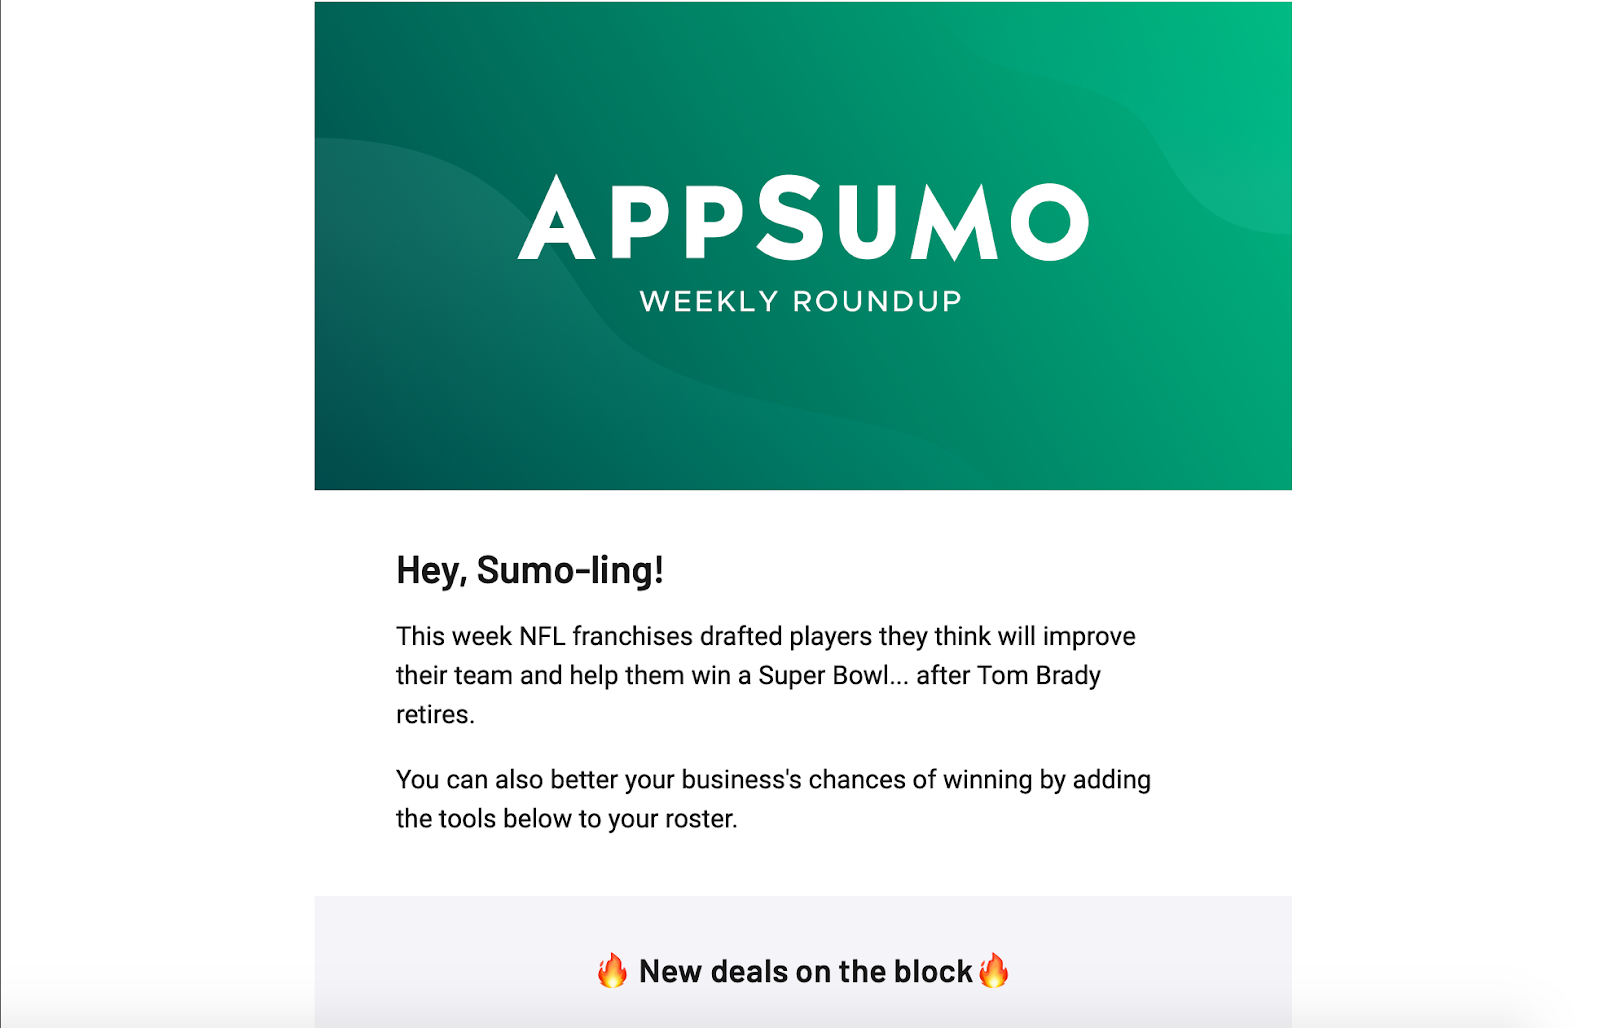 Example of a good newsletter from AppSumo